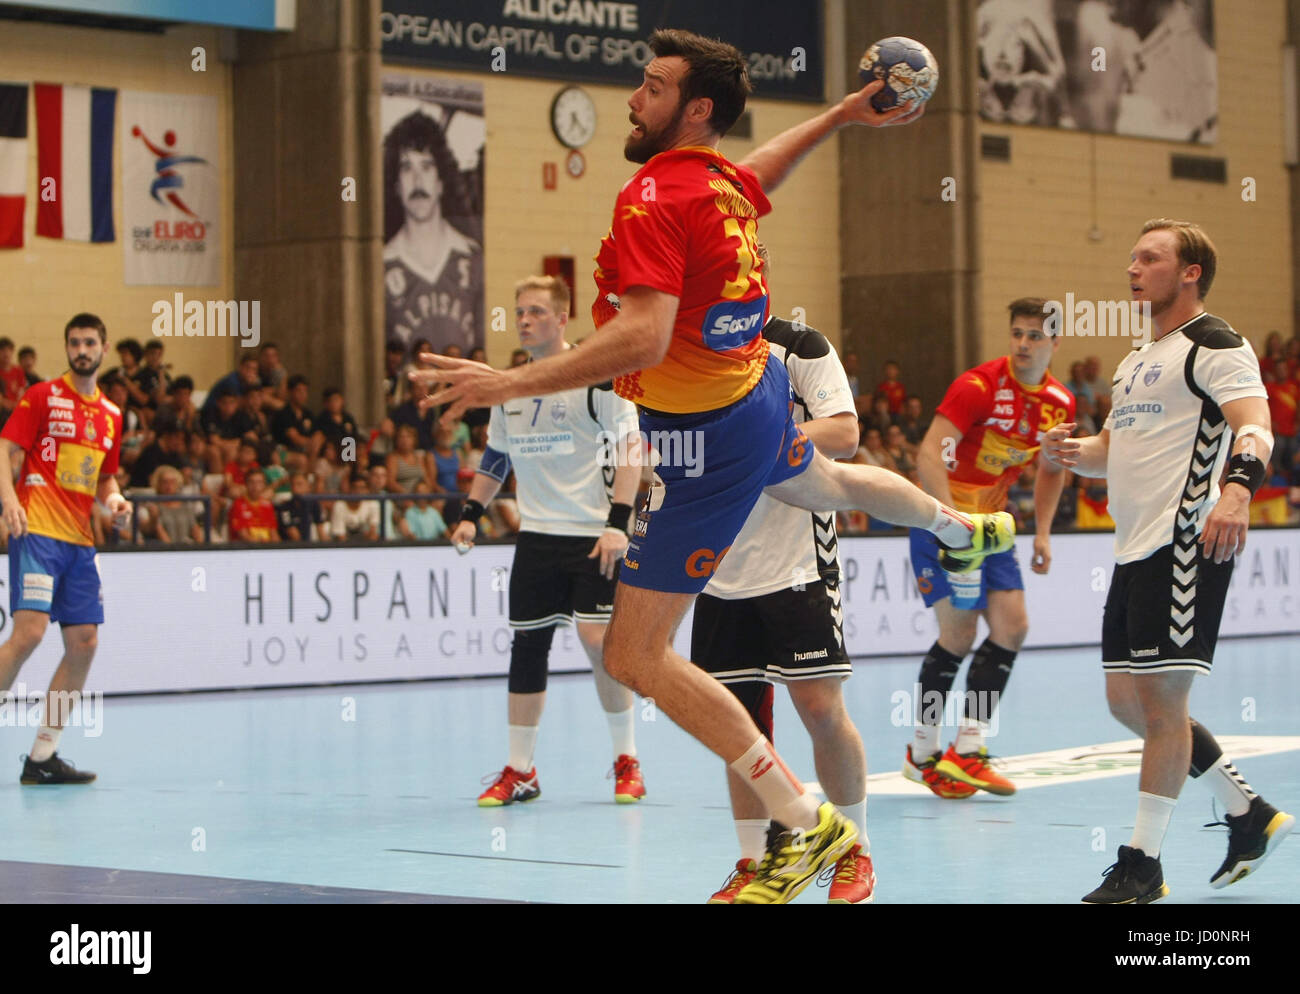 Spanish handball national team's player Gideon Guardiola (C) shoots the ball as Finnish Koljonen (R) looks on - Stock Image